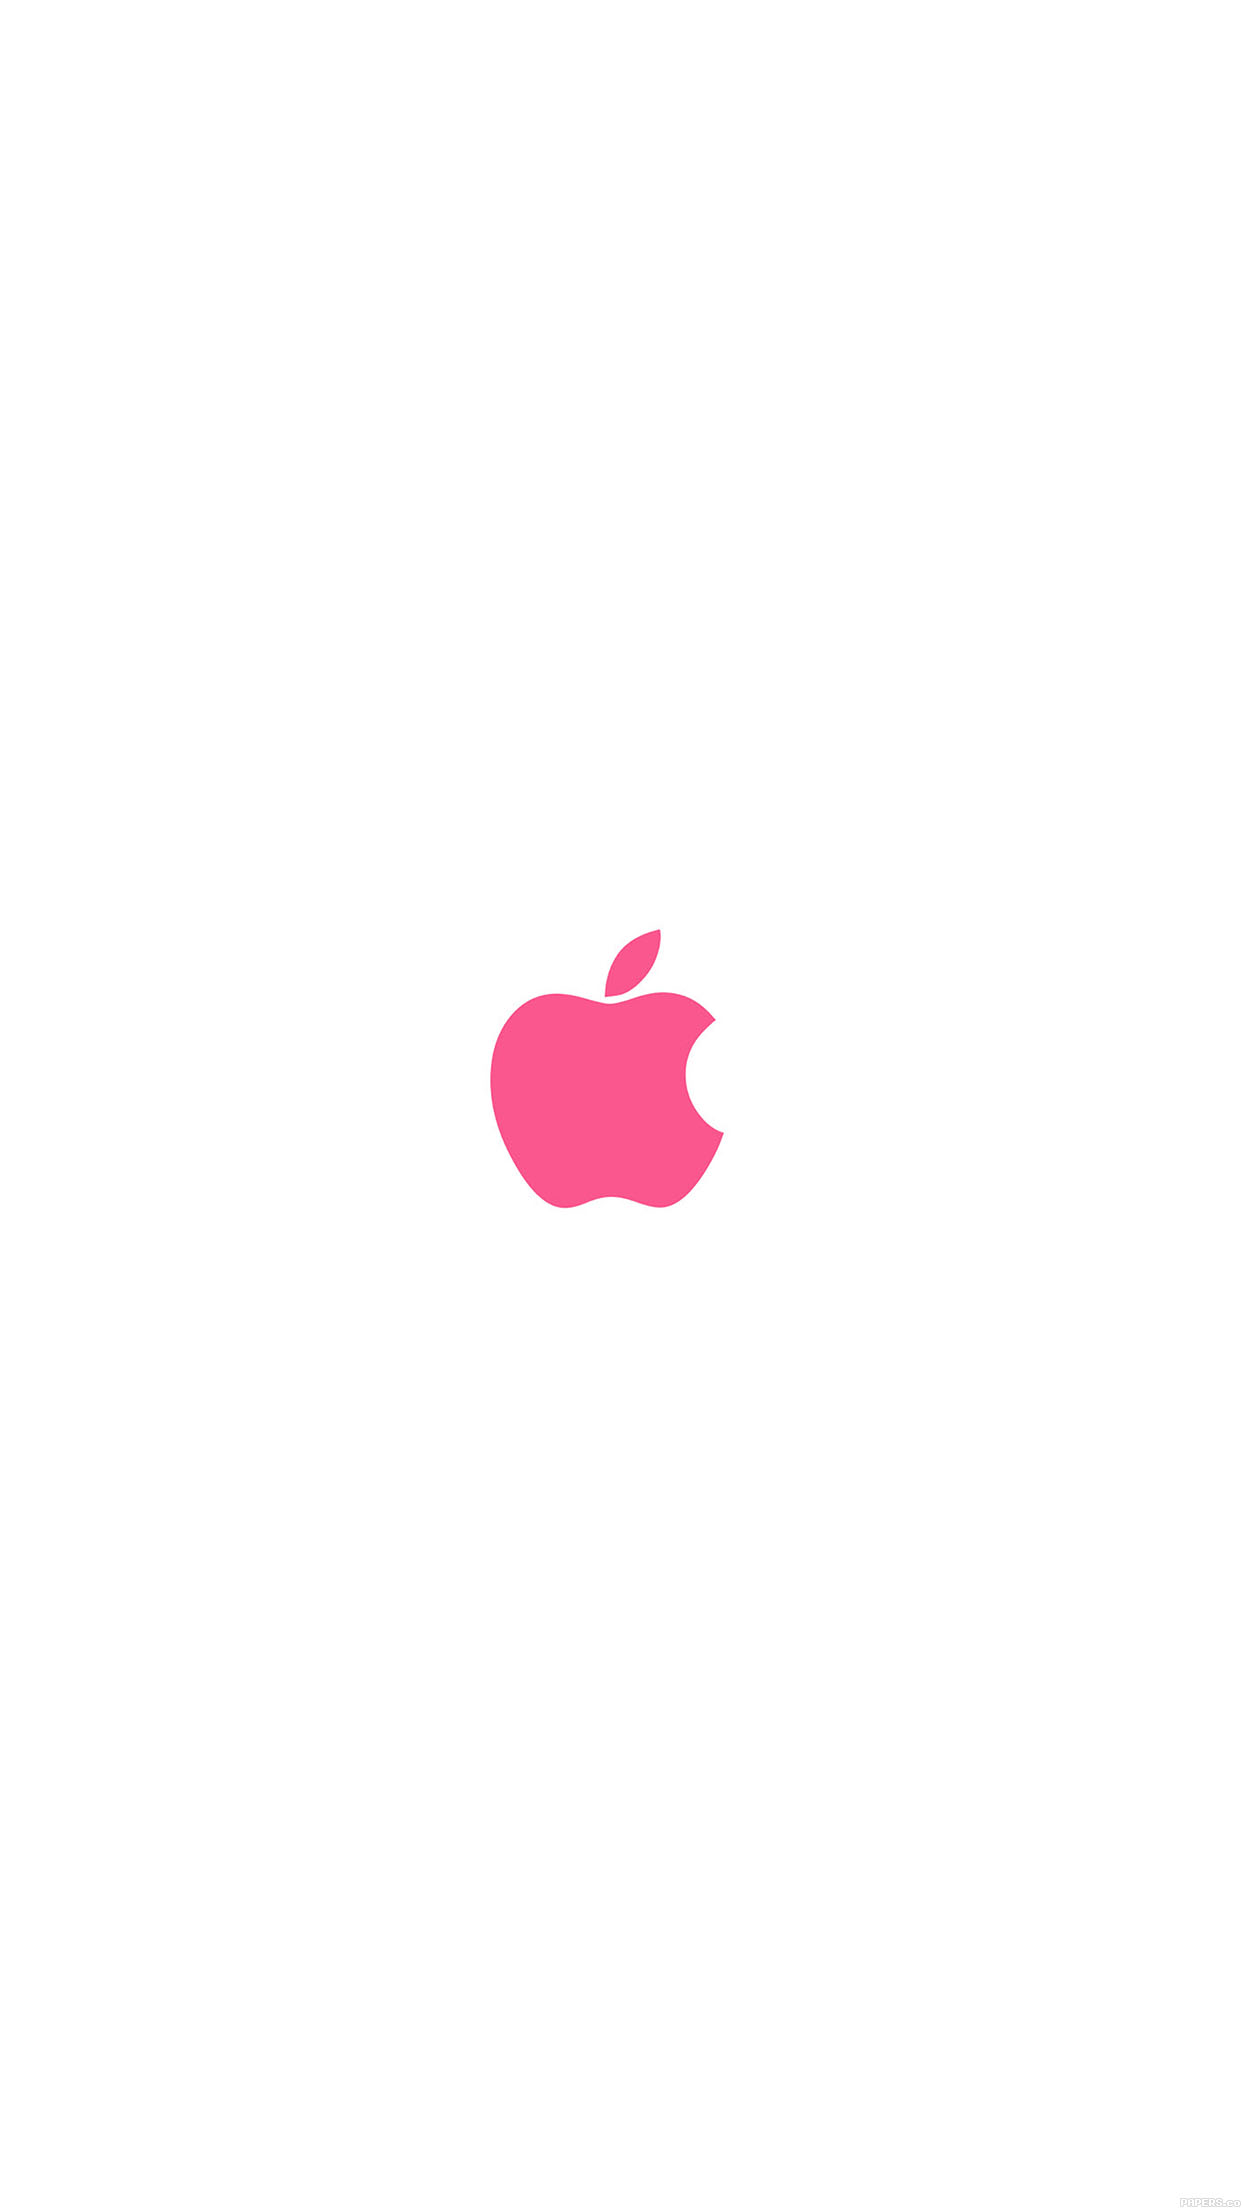 Pink Fall Desktop Wallpaper Papers Co Iphone Wallpaper Va15 Apple Simple Logo